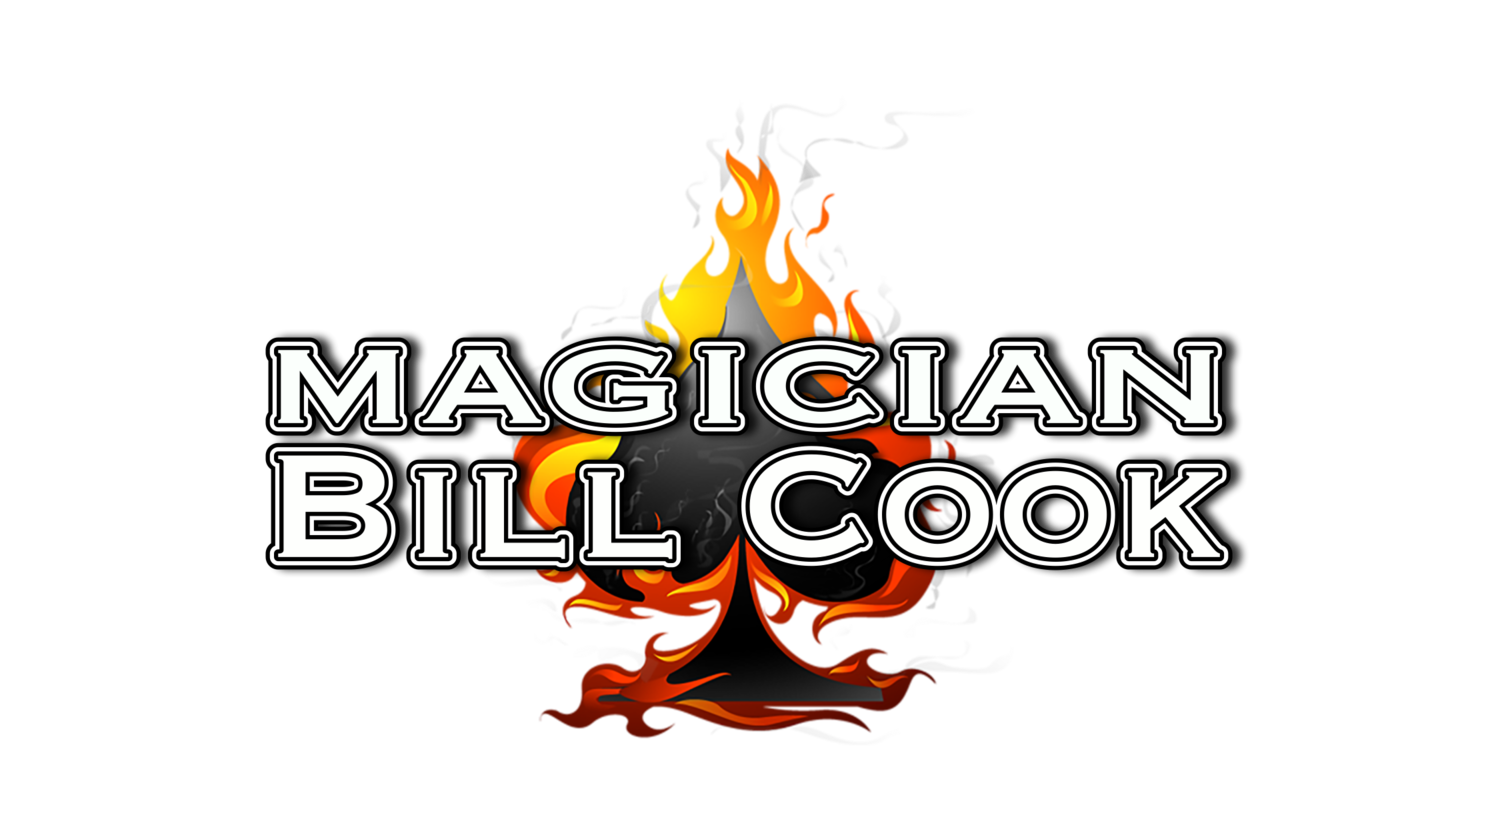 Magician Bill Cook